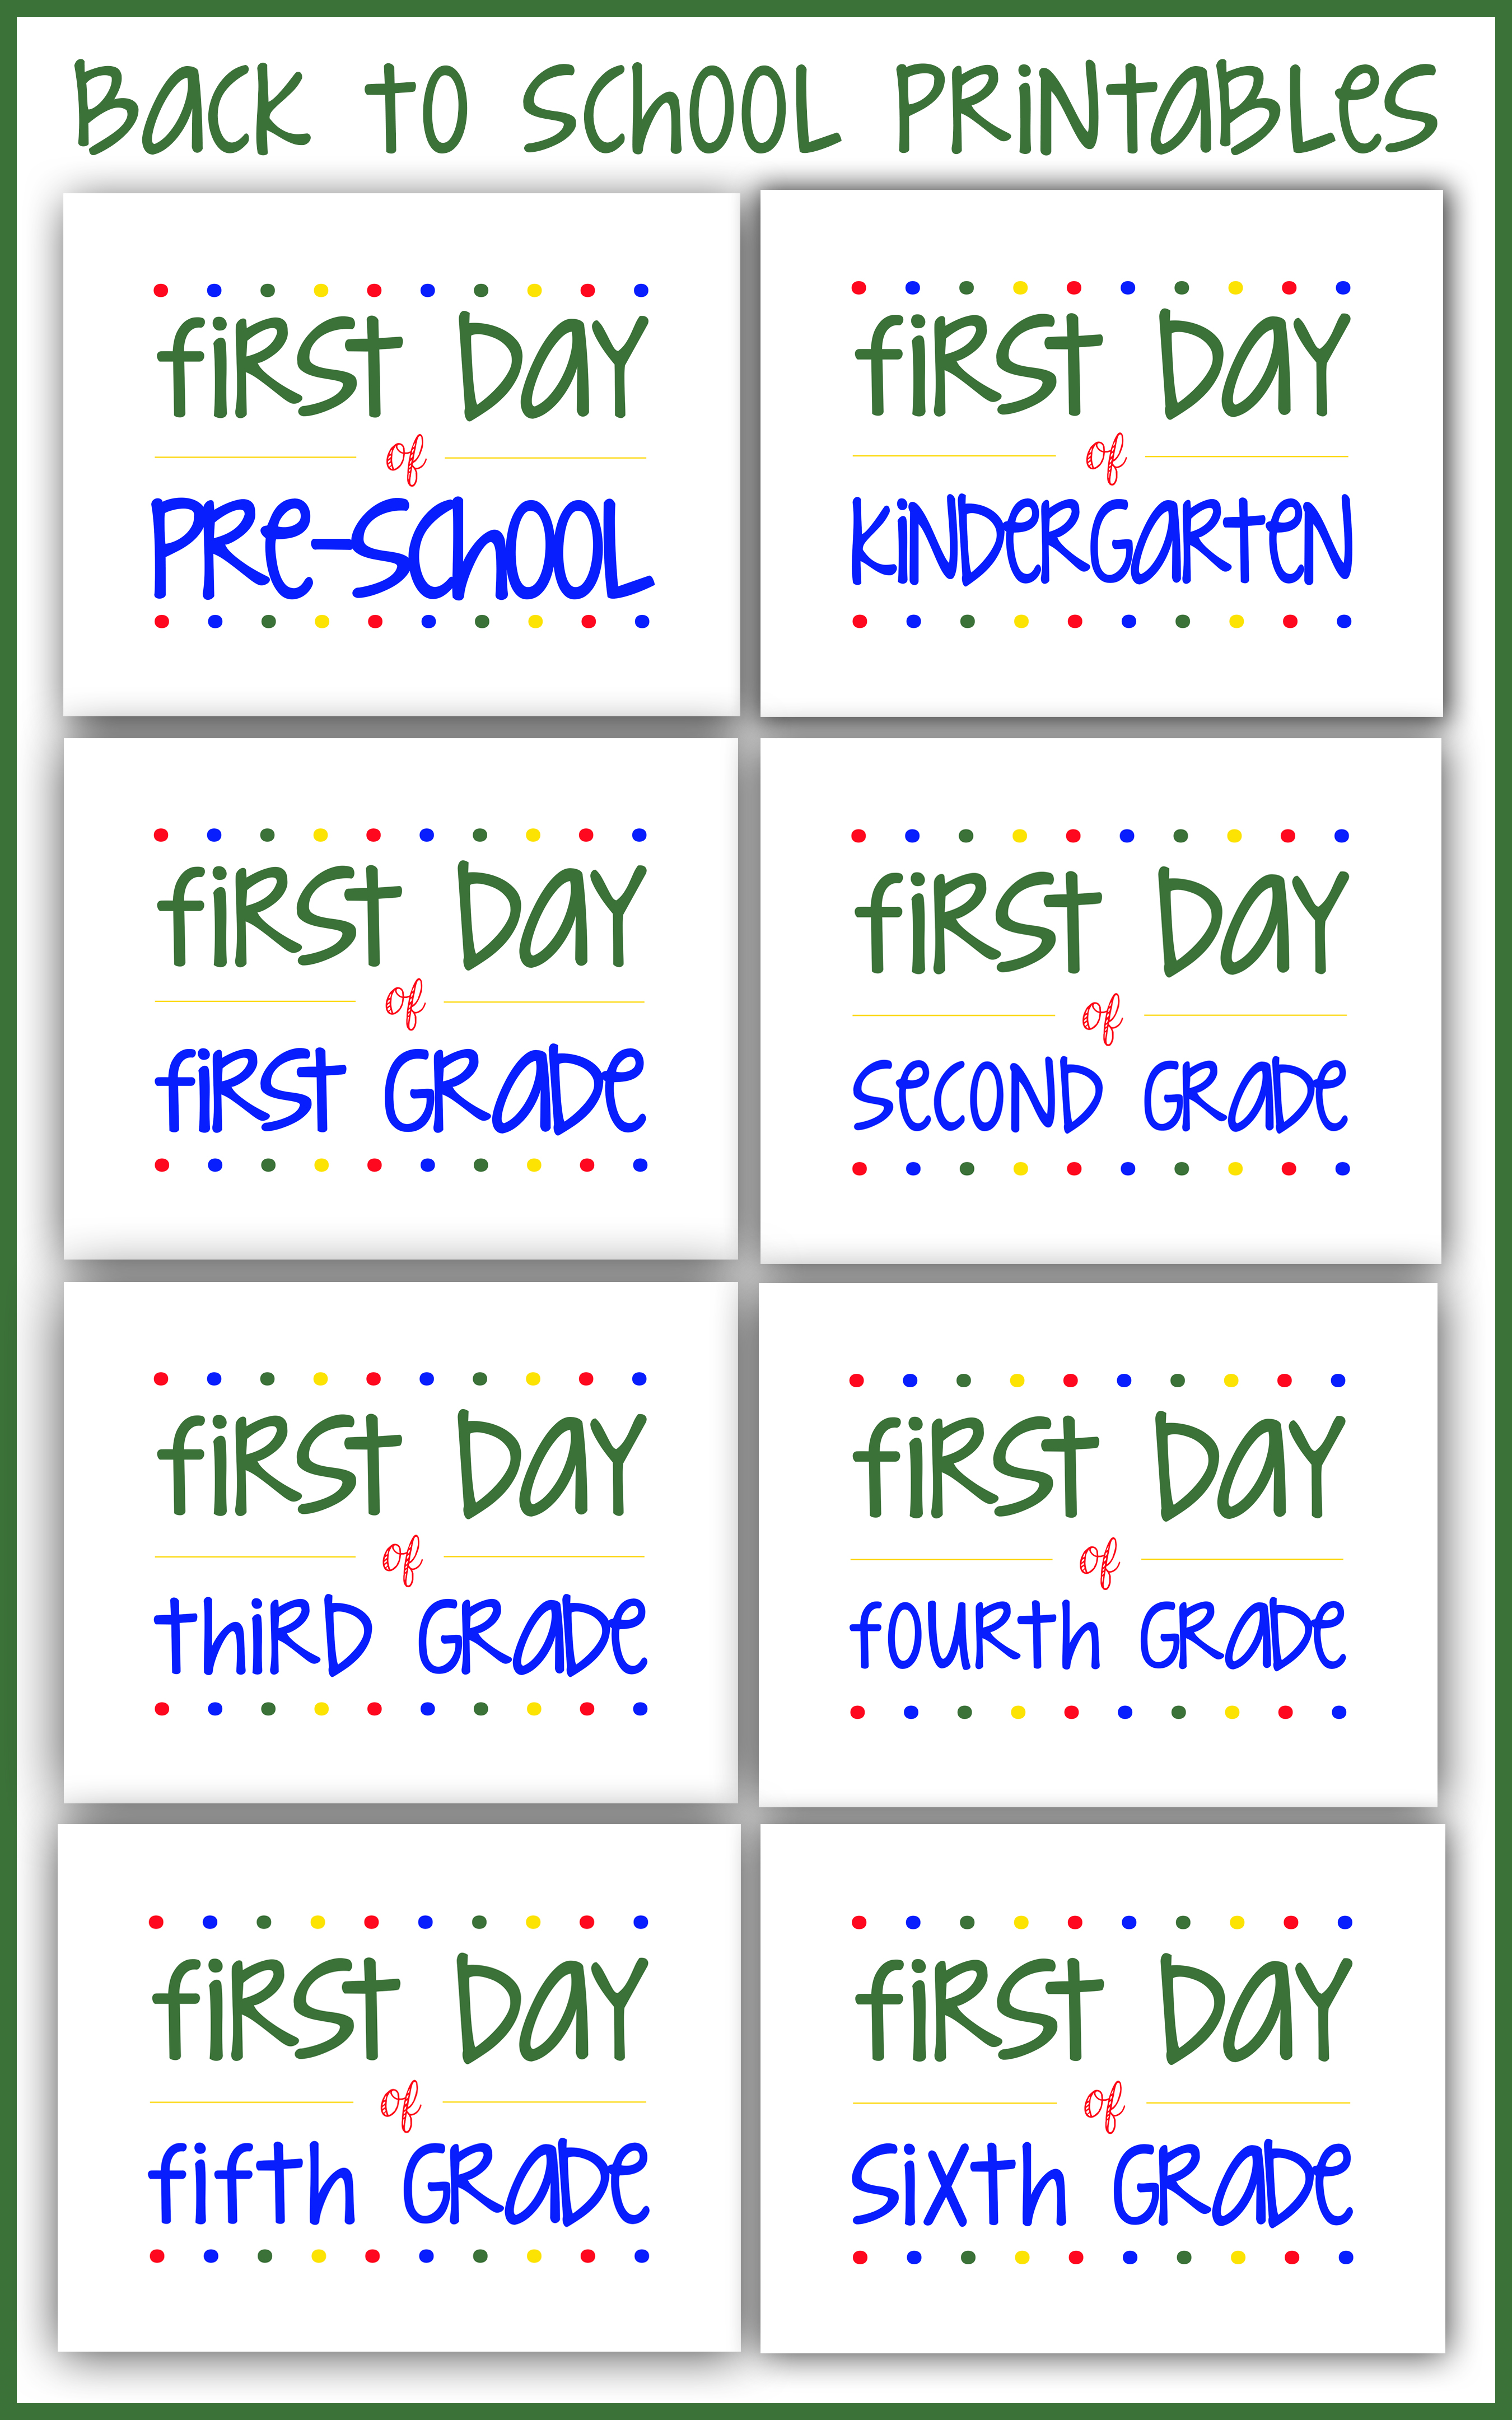 hight resolution of Back to School Printables to Take Great First Day Photos Each Year